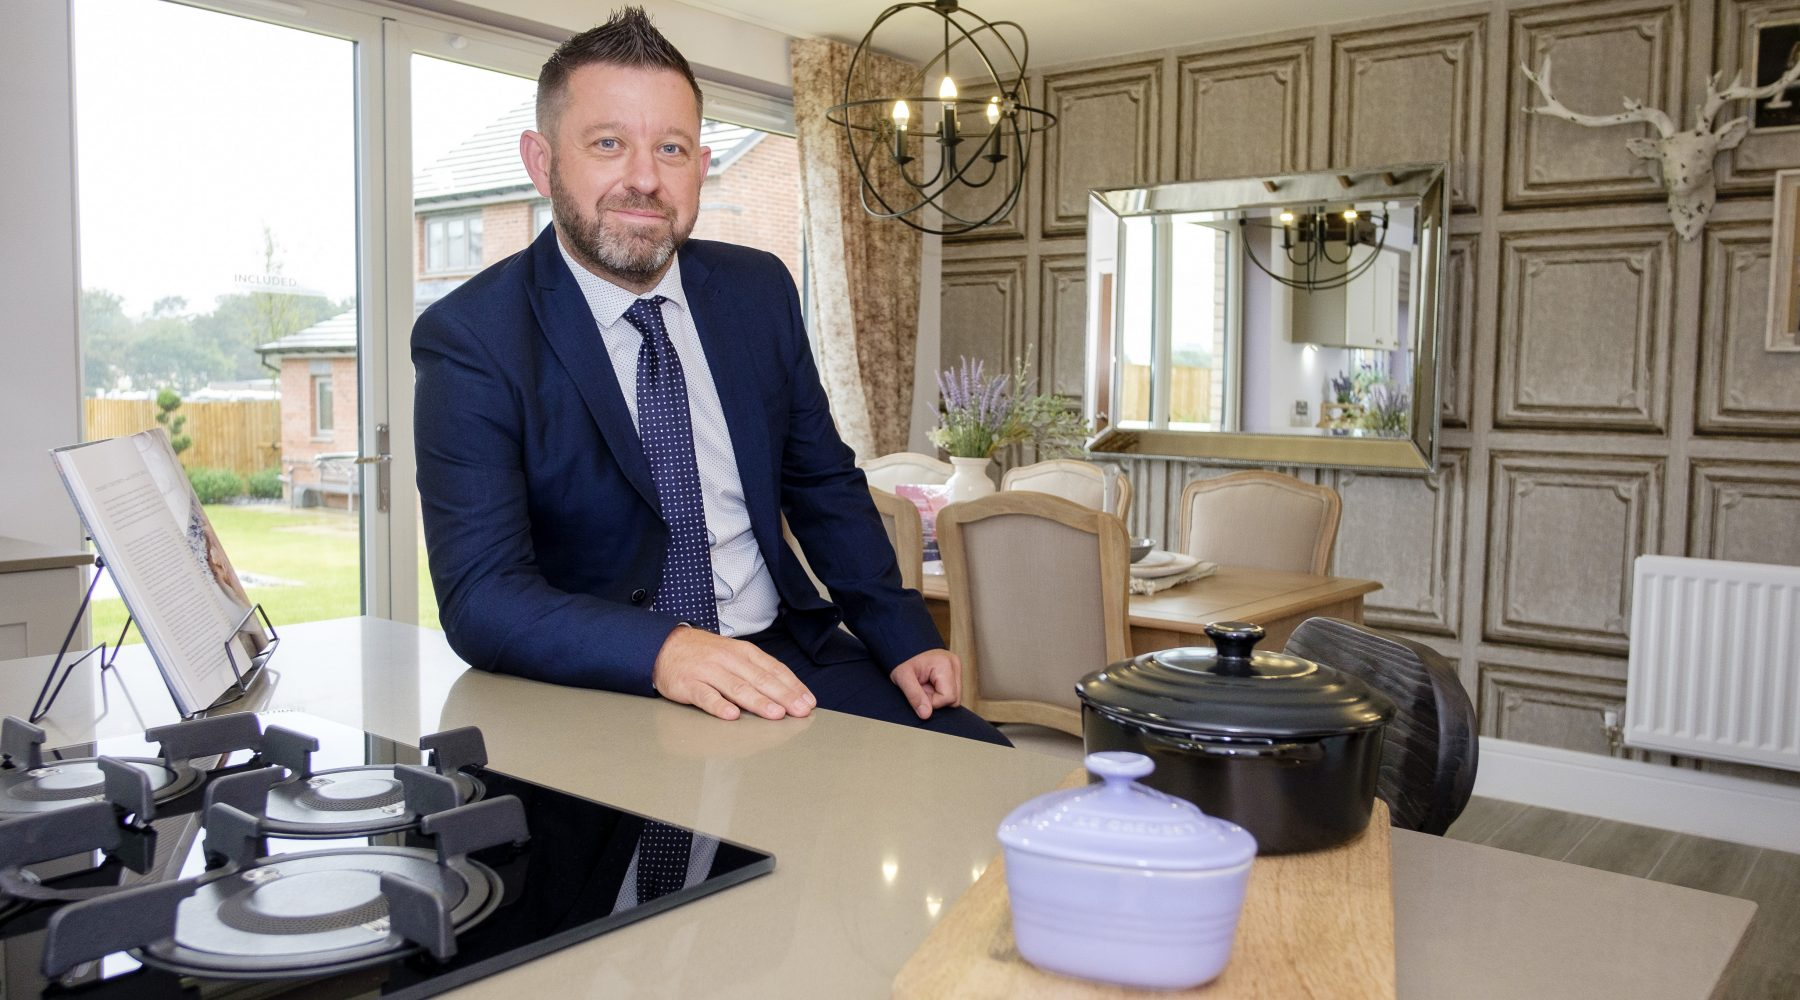 AVANT HOMES APPOINTS BRADFORD'S MARK PHELAN IN NEWLY…